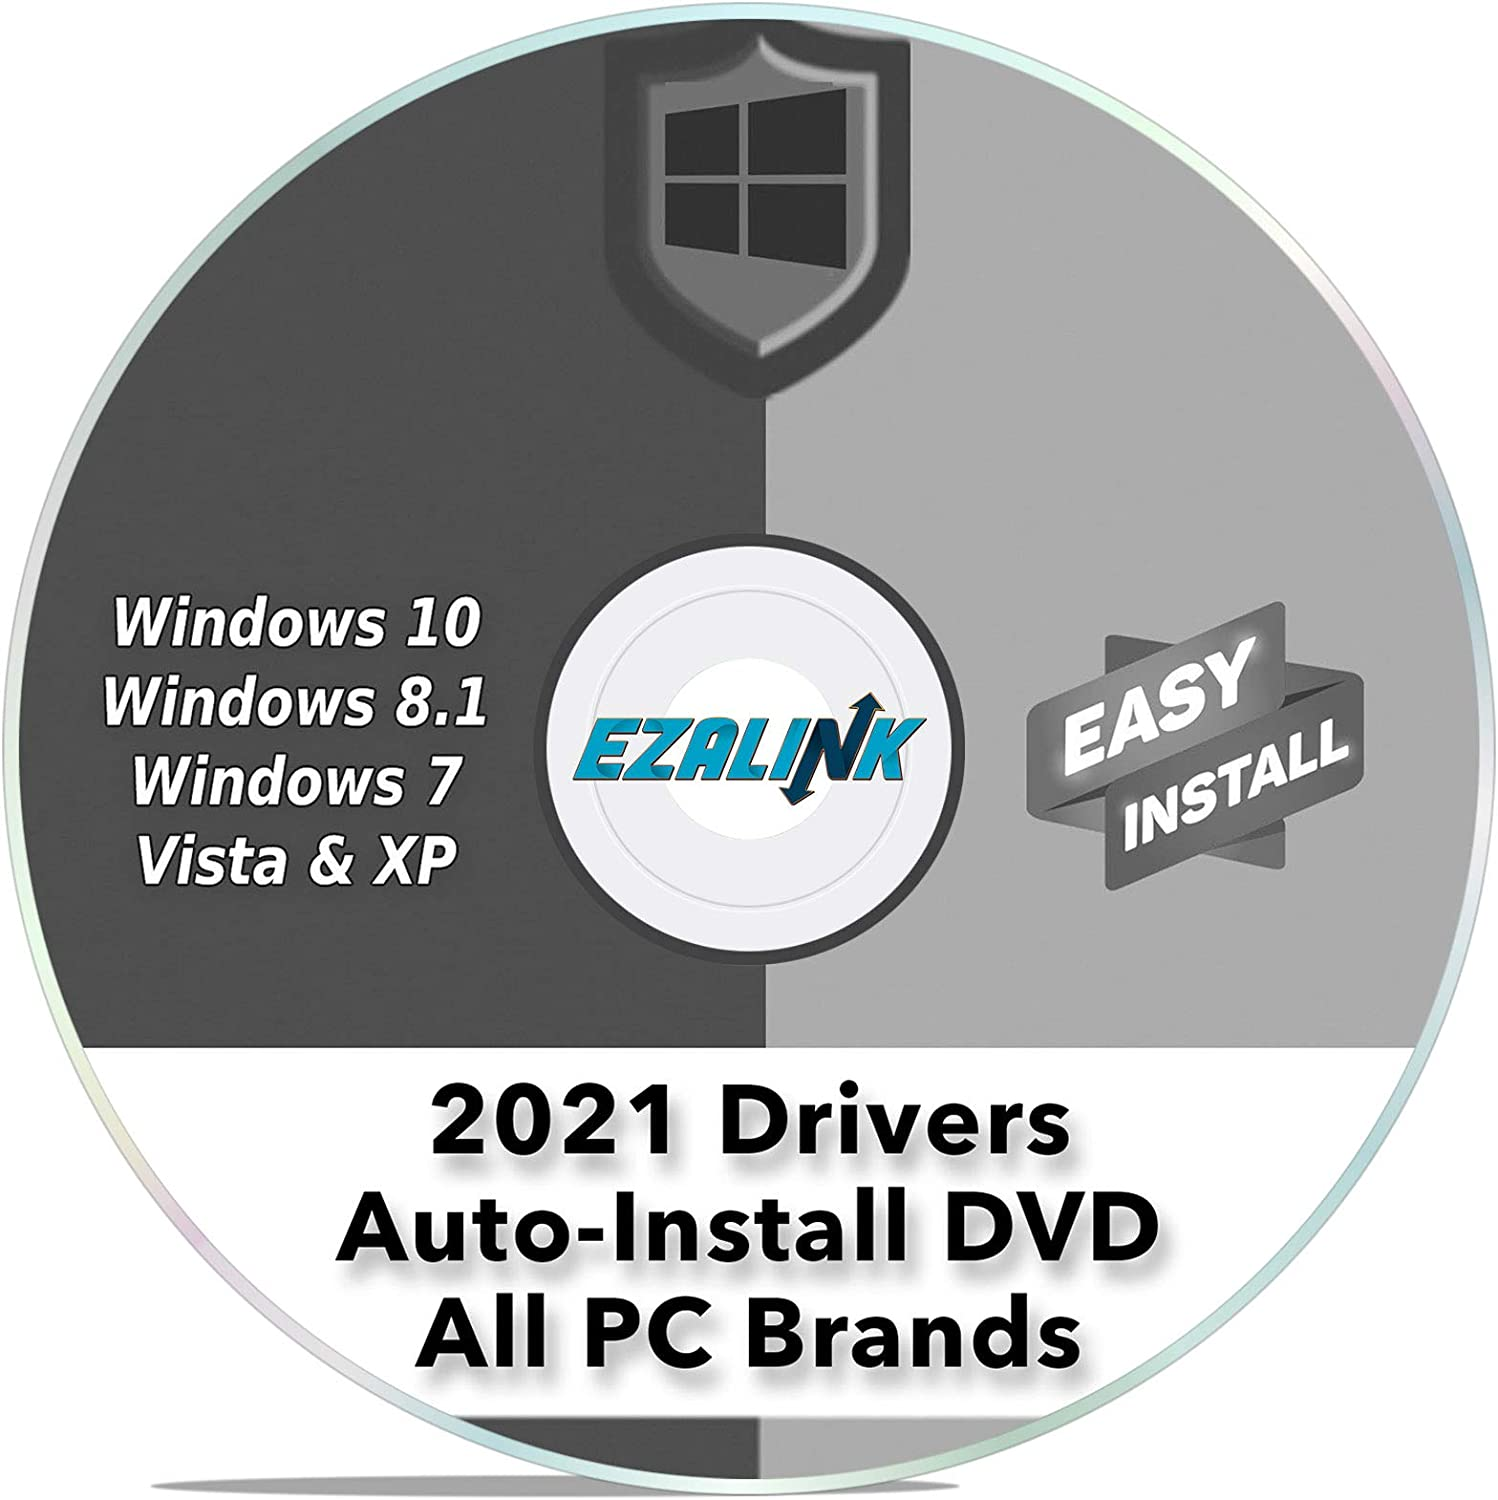 Windows Driver Installation Automatic Install Software DVD for ANY PC Computer (Dell, HP, Asus etc) Easy Update Disc